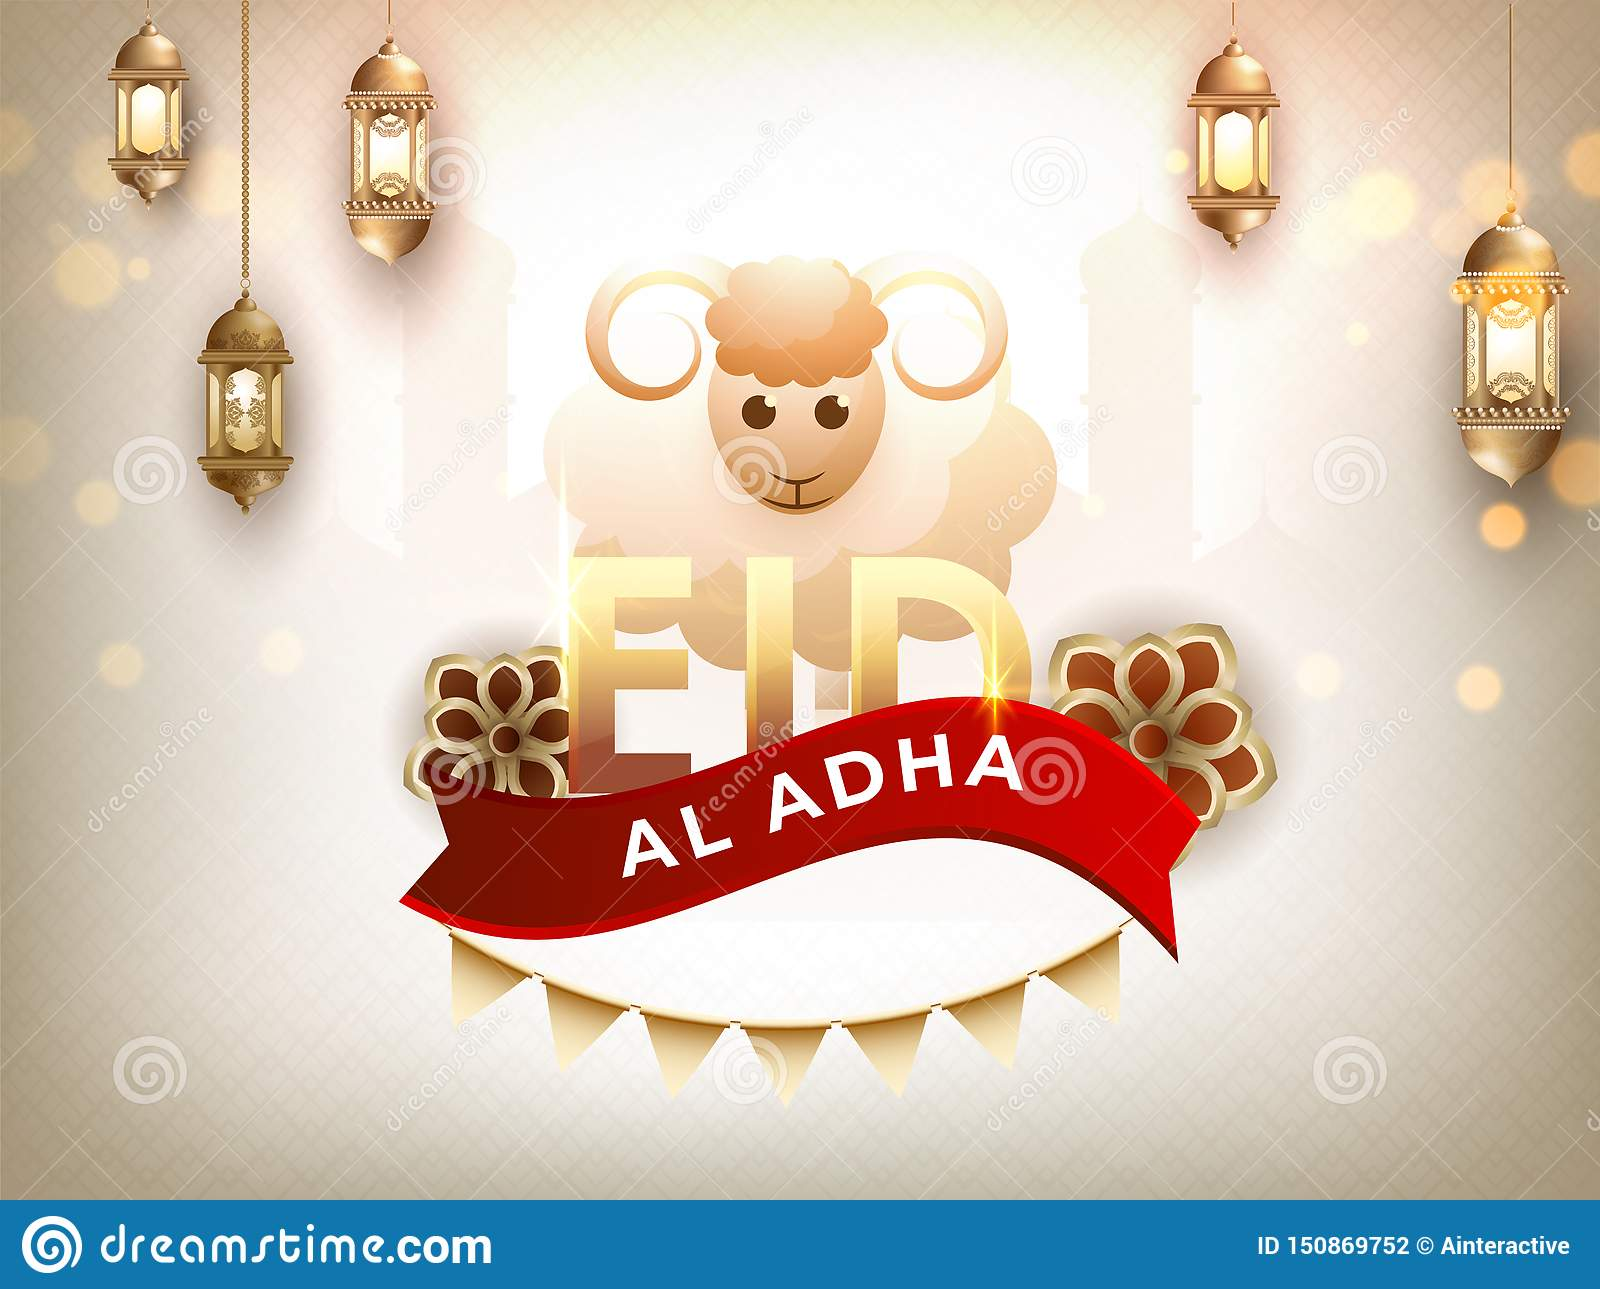 Creative illustration of Sheep with calligraphy text Eid-Al-Adha on Mosque.